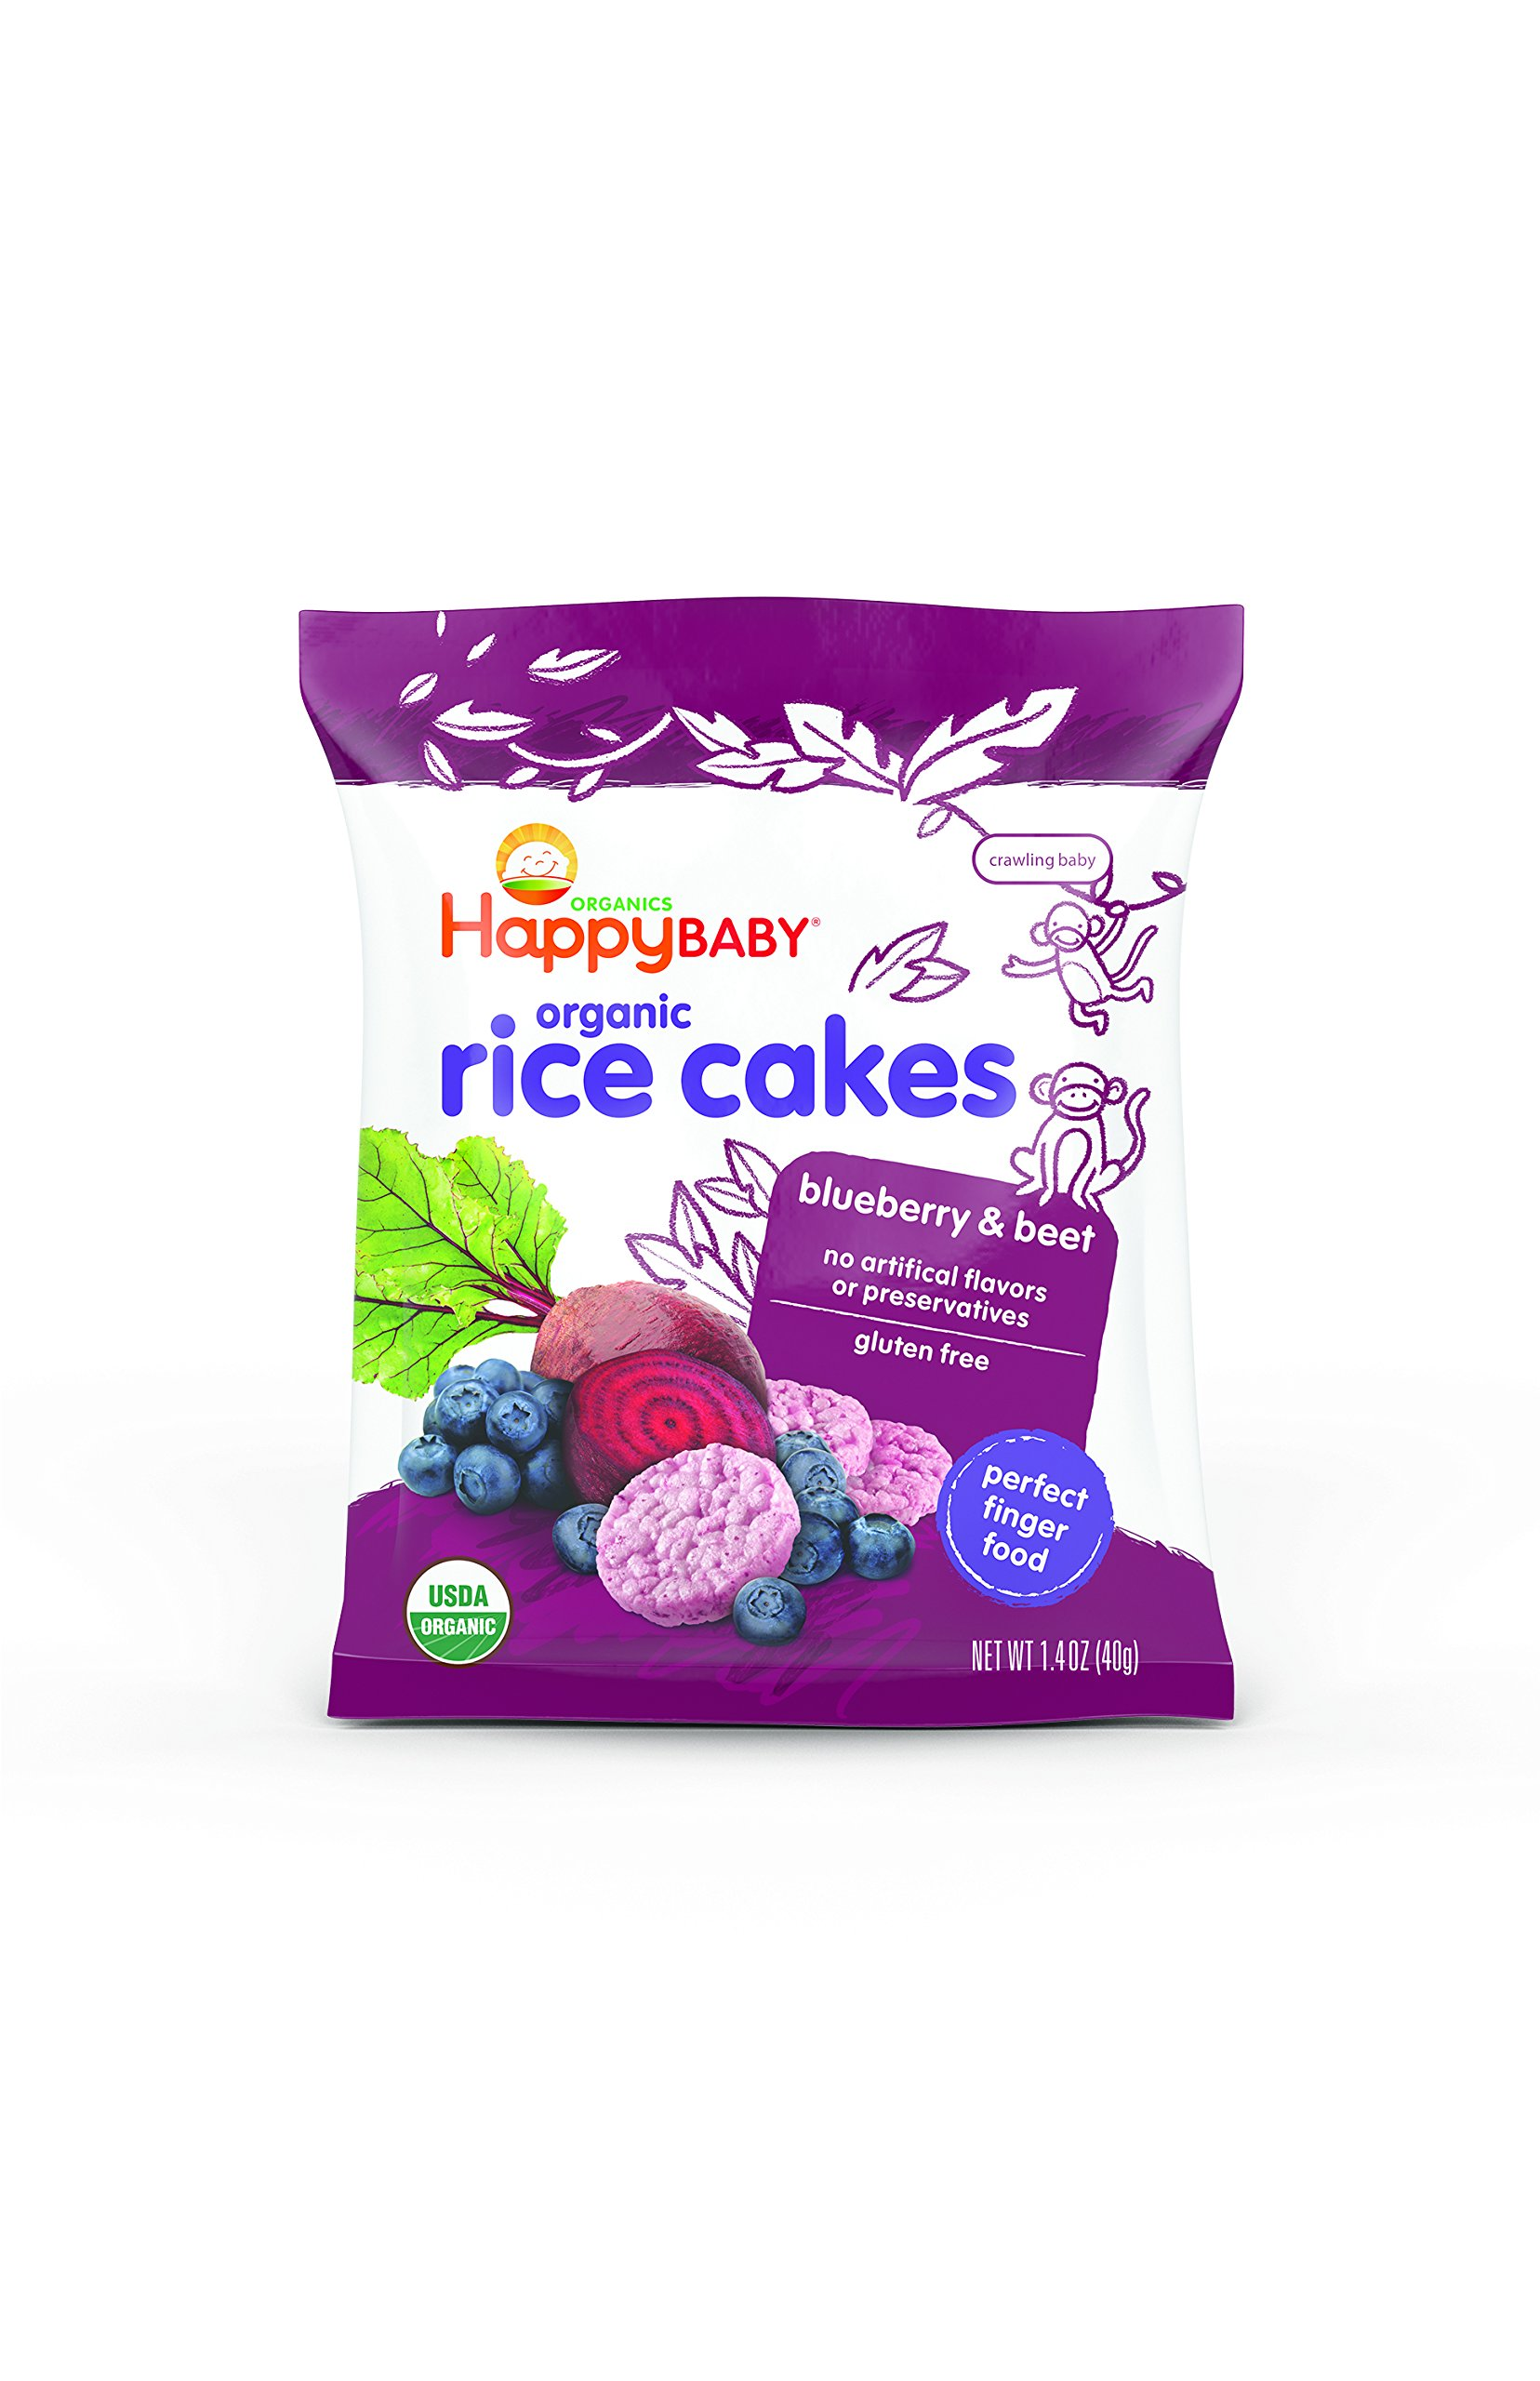 Happy Baby Organic Rice Cakes Blueberry & Beet, 1.4 Ounce Bag (Pack of 10) Puffed Brown Rice Crackers, Baby Snacks or Toddler Snacks, No Added Colors, Encourages Tactility & Self-Feeding